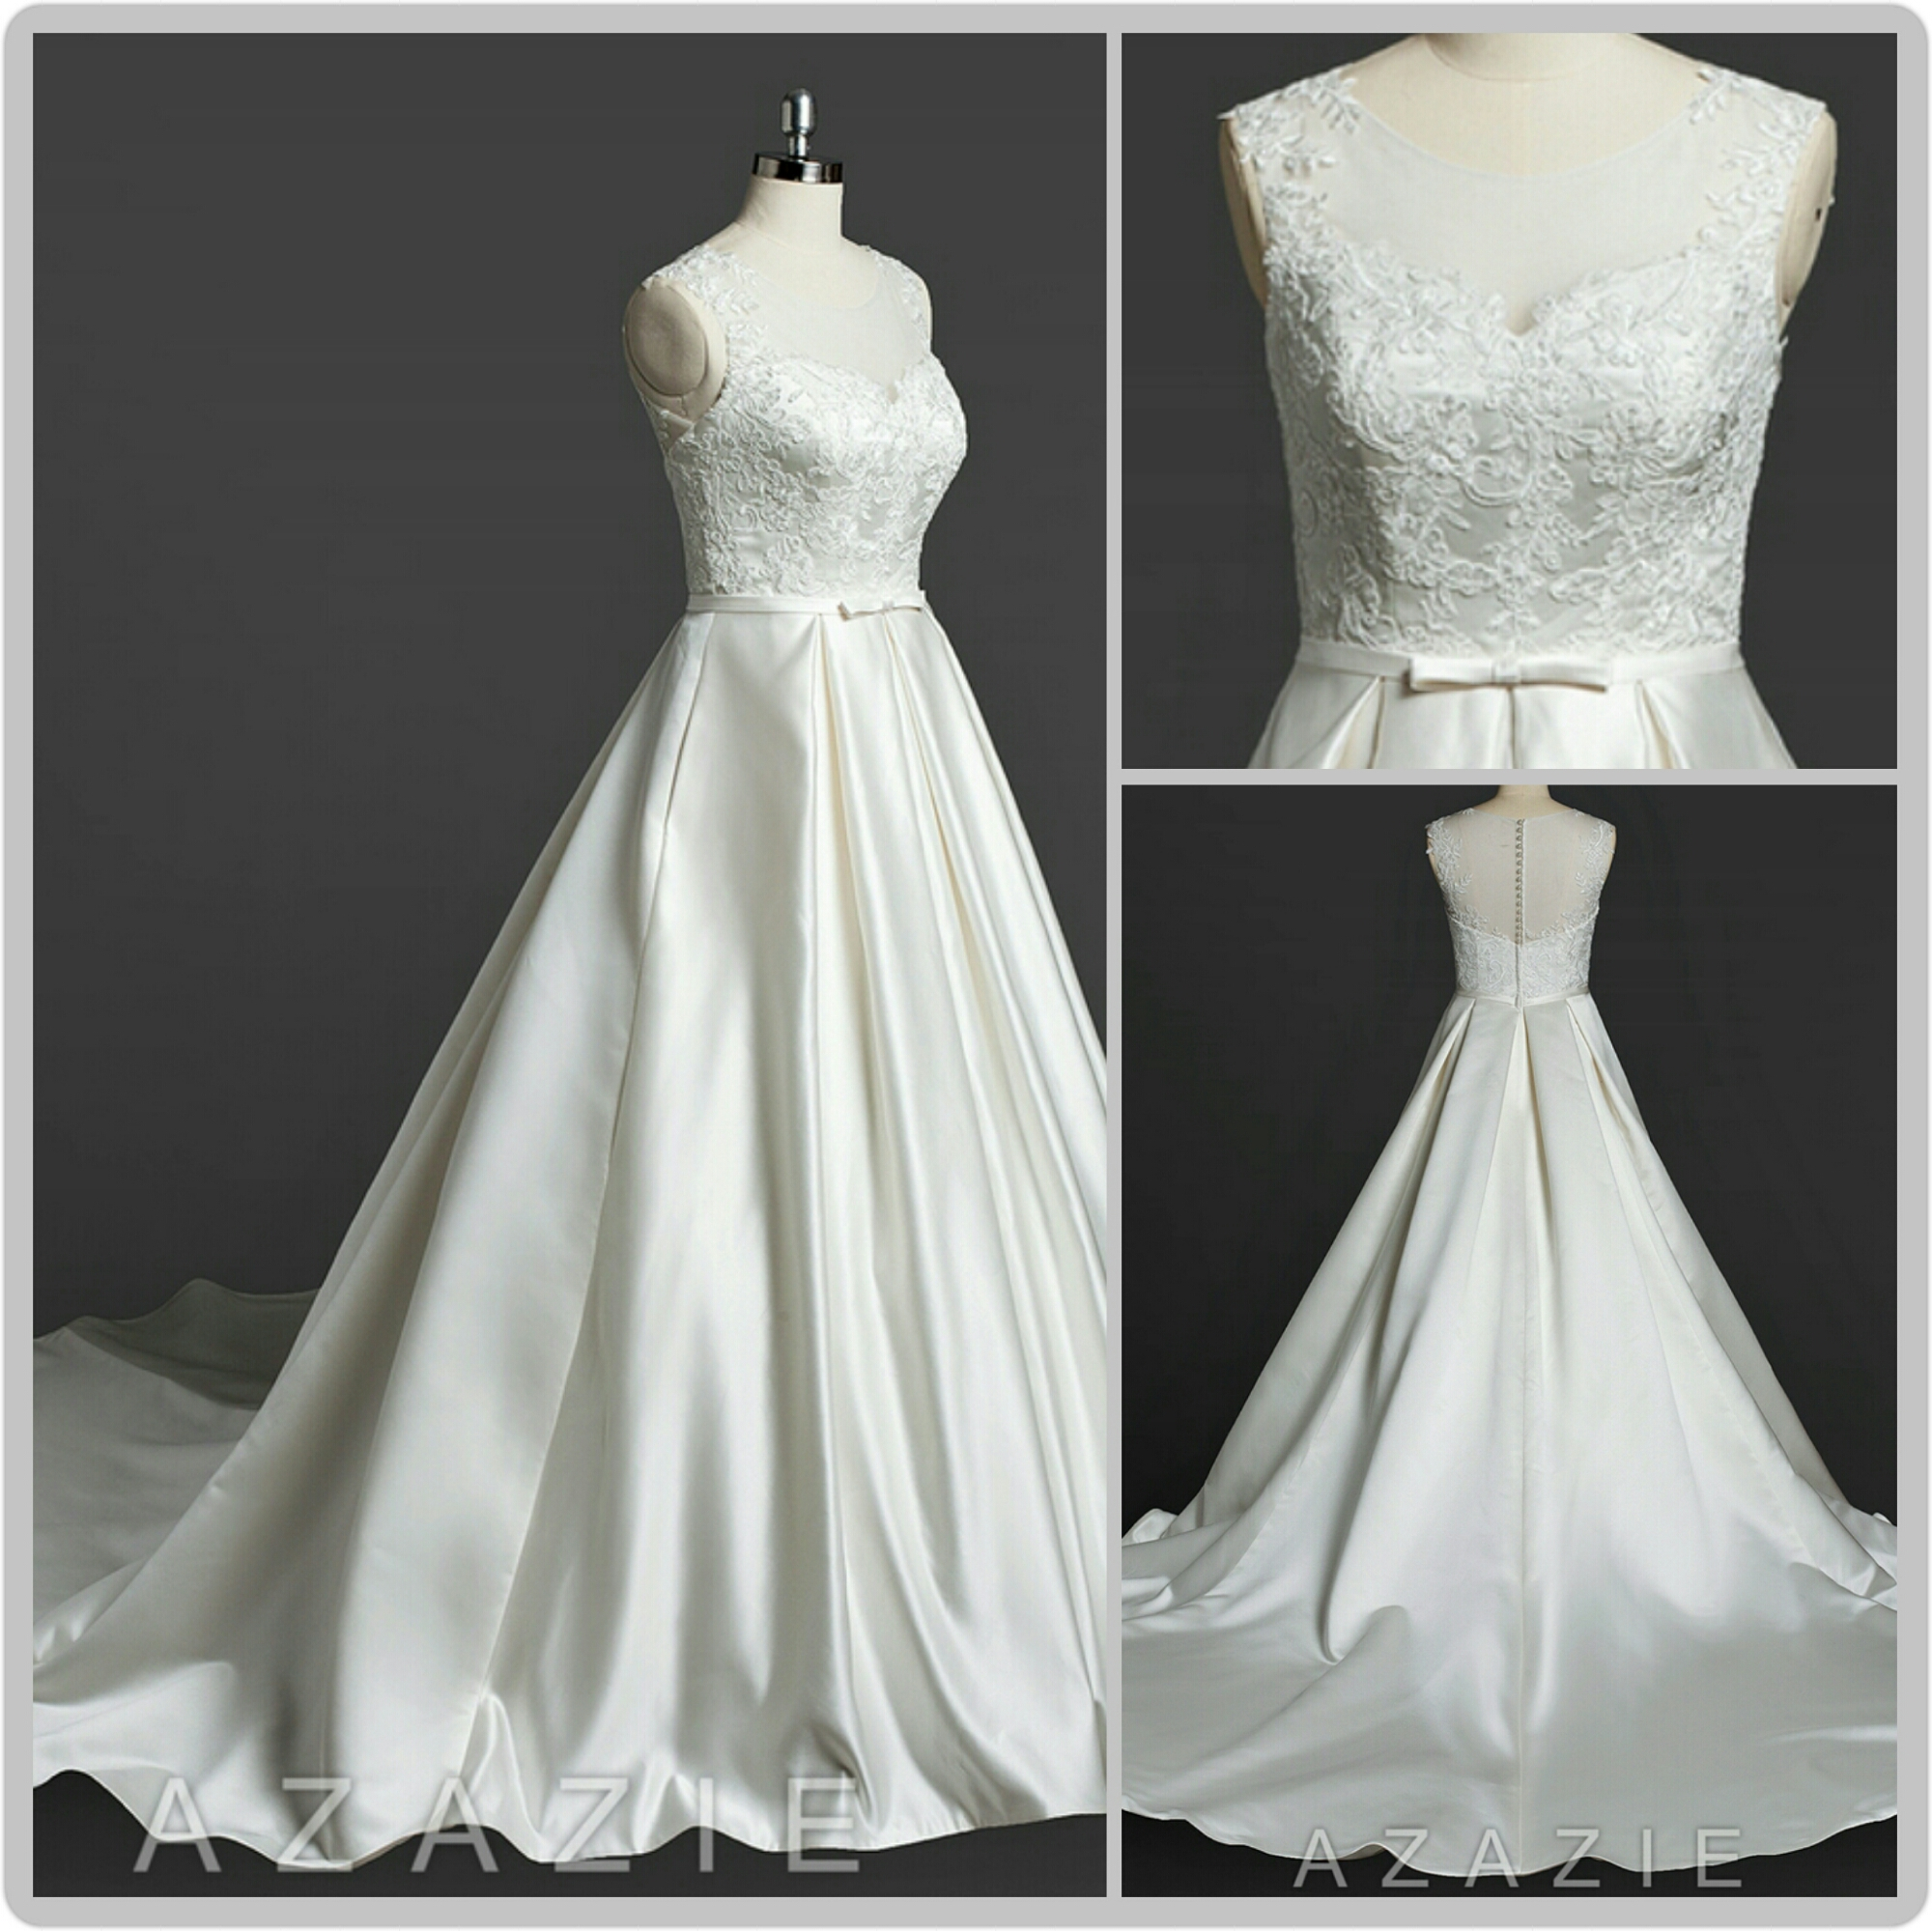 Beaded Gowns Tagged 100 200 The Deco Haus: TAGWeddings